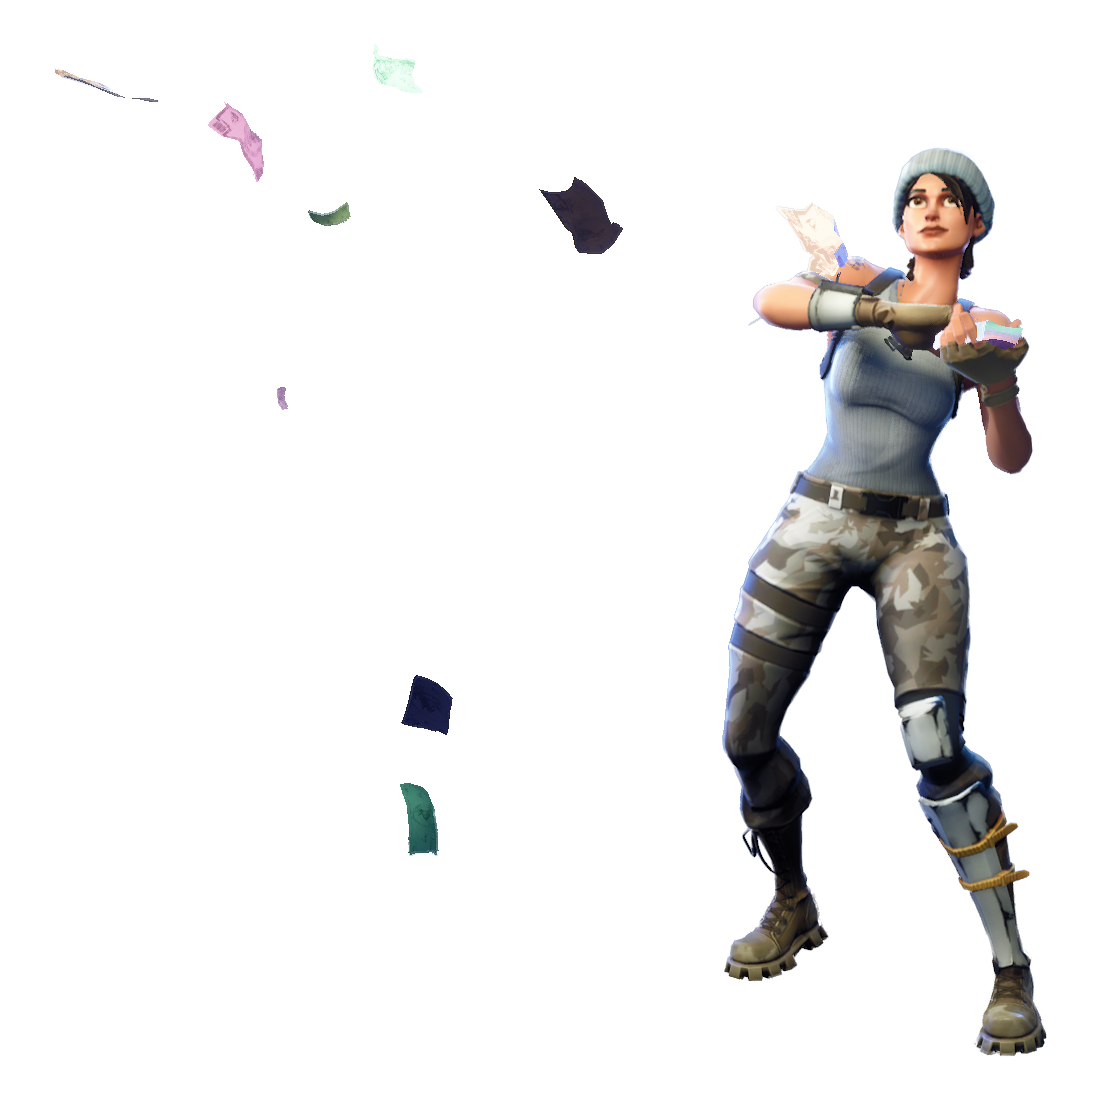 Make it rain image. Take the l fortnite png clipart black and white stock